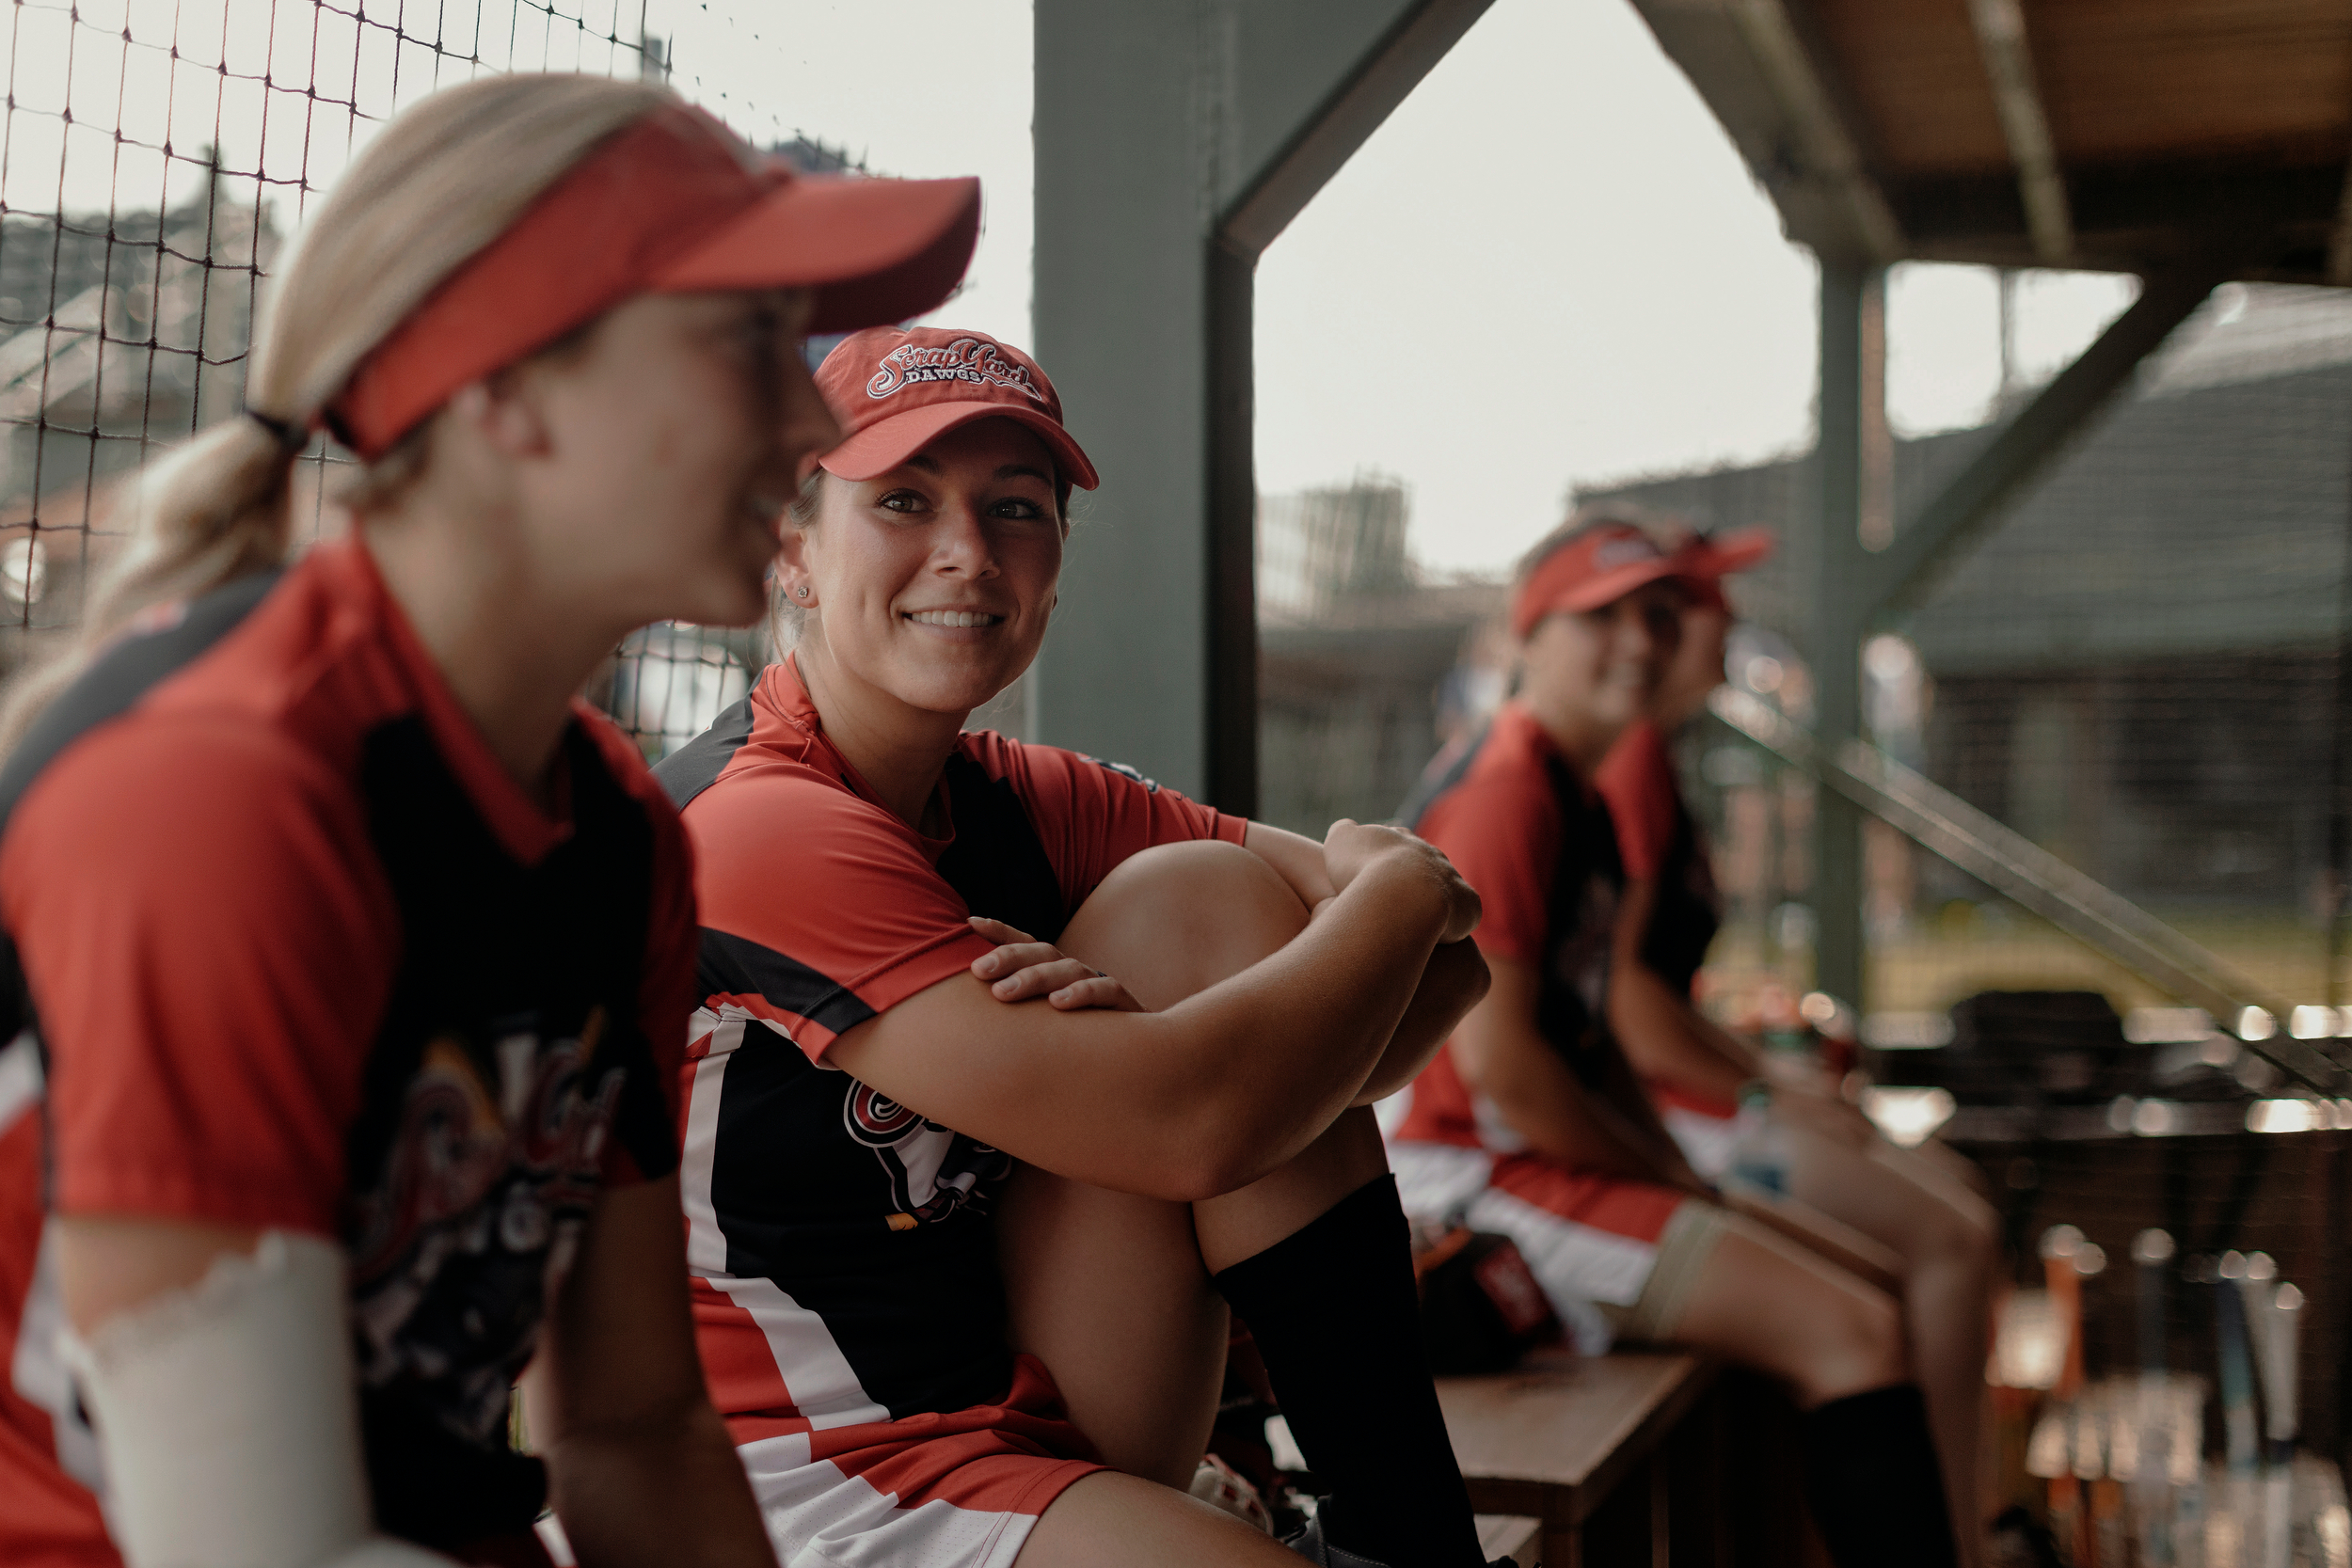 Catcher, Lee Ann Spivey, center, shares stories with her teammates prior to the game. Todd Spoth for The New York Times.